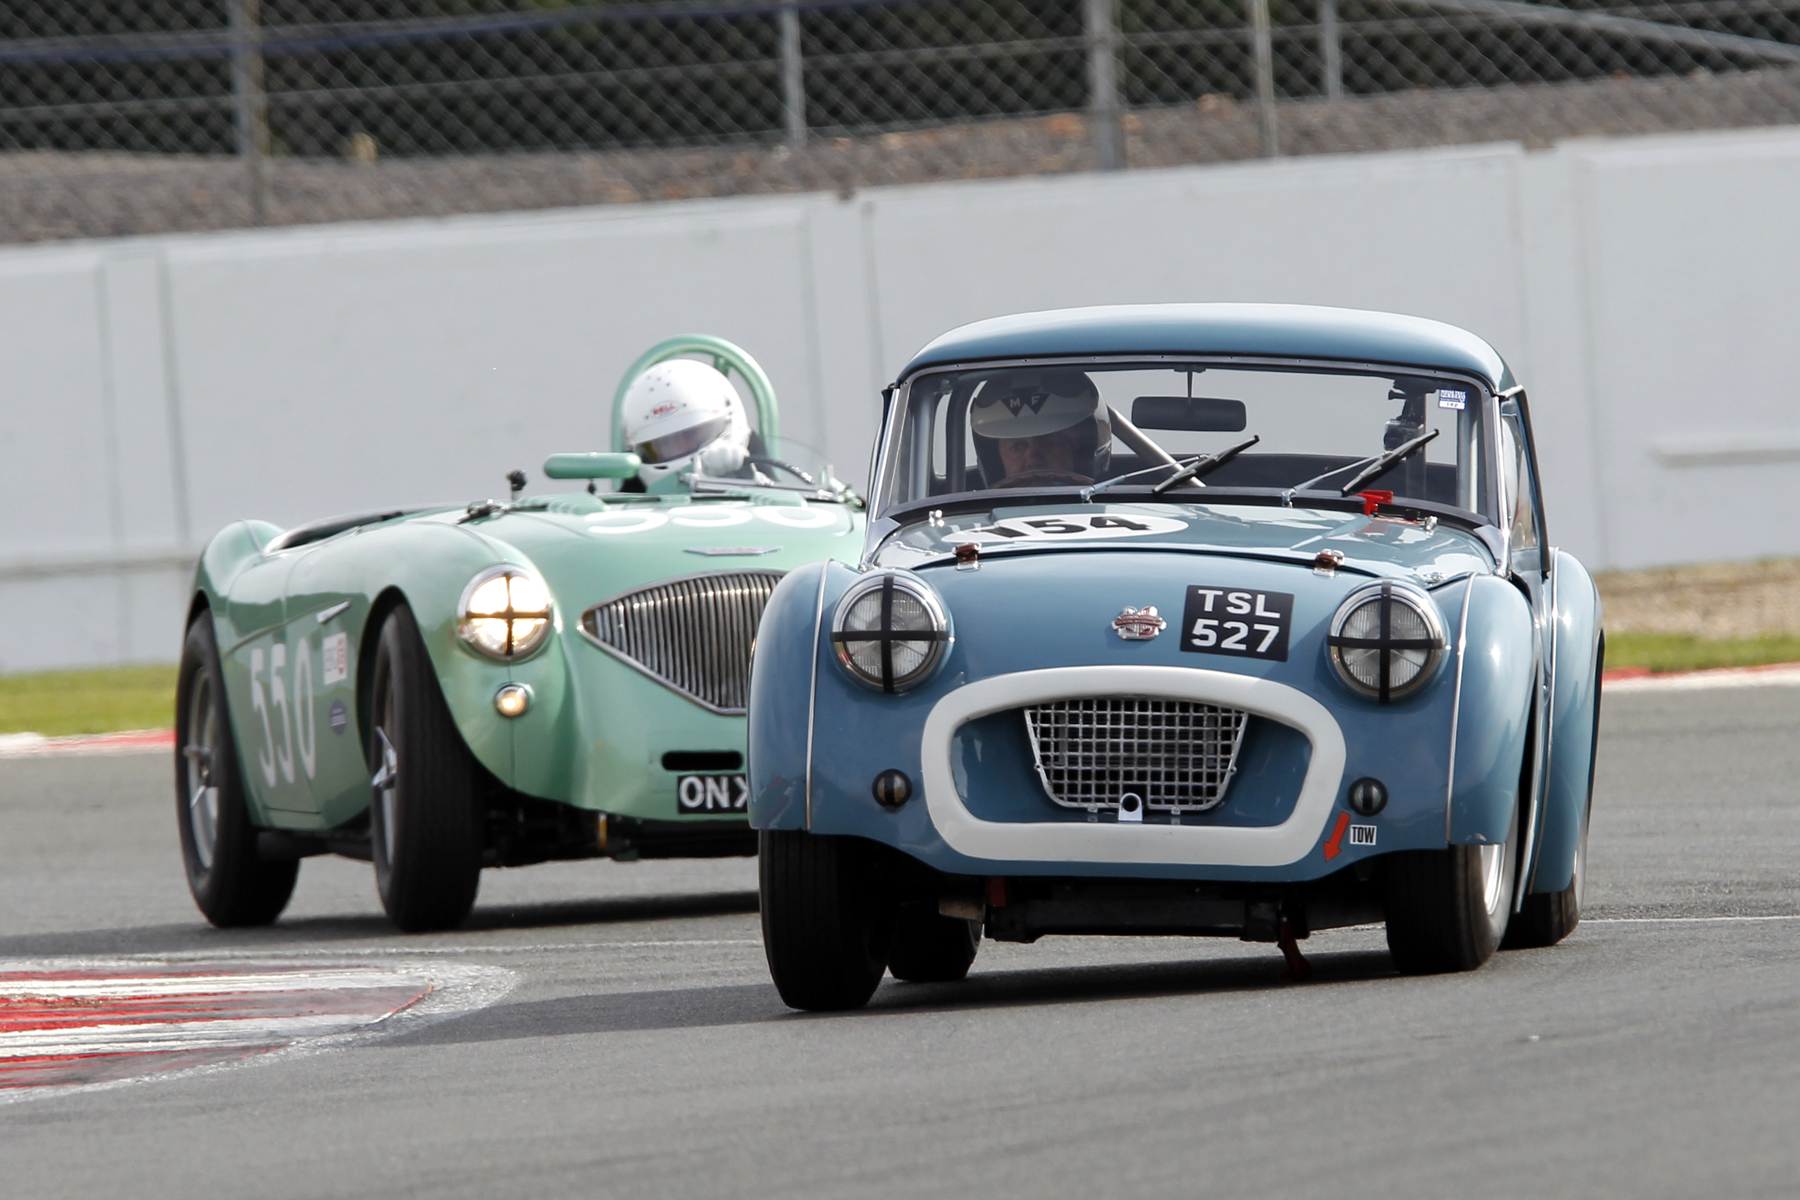 The Ziller/Arif TR2 going great guns but about to be lapped by the leader                    Photo  - Mick Walker